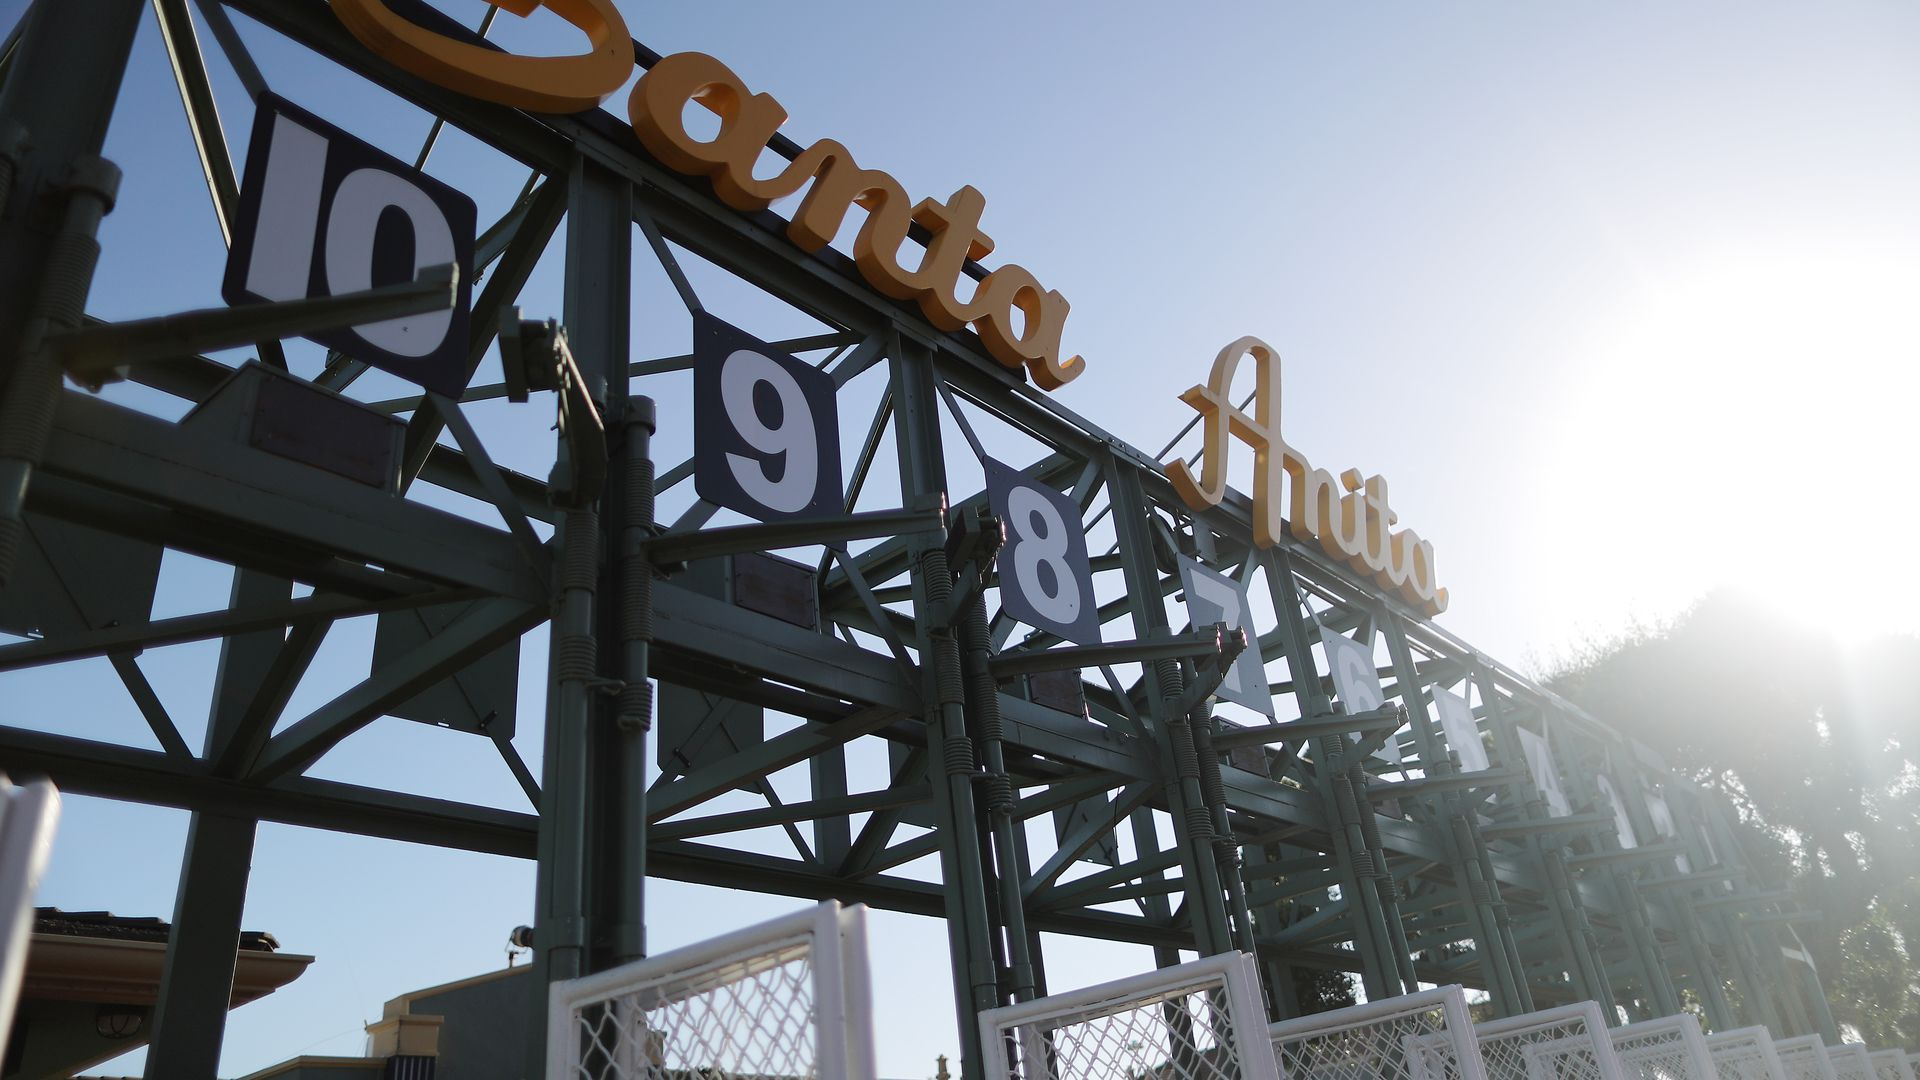 A starting gate stands outside the track on the final day of the winter/spring horse racing season at Santa Anita Park on June 23, 2019 in Arcadia, California.